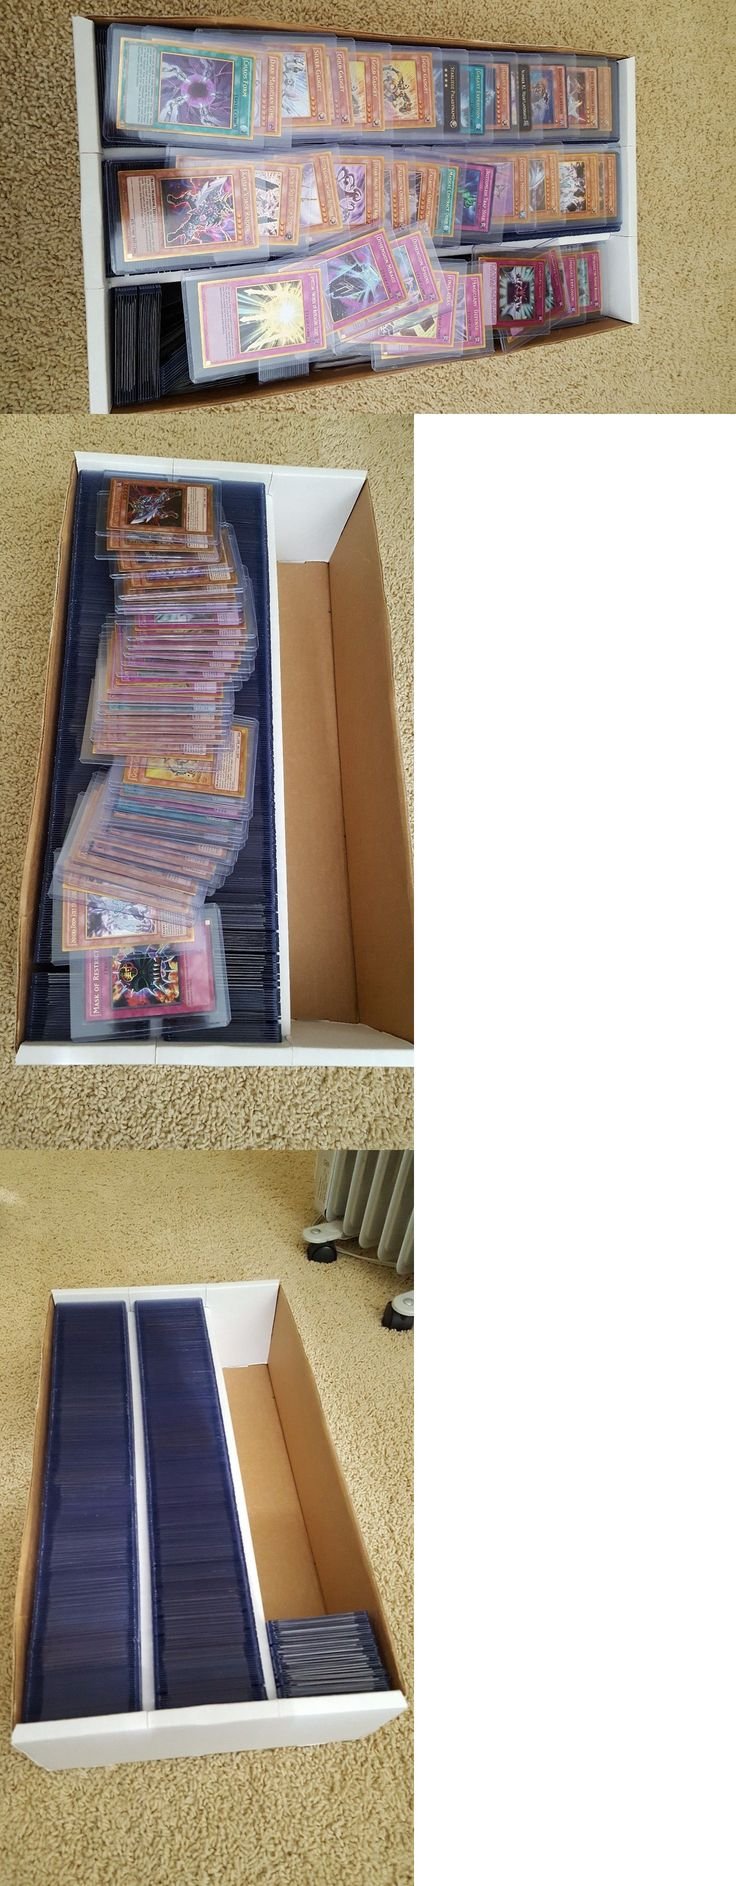 Yu-Gi-Oh Mixed Card Lots 49209: 700+ Yugioh Cards All Of Them Are Holos And Near Mint (Description) -> BUY IT NOW ONLY: $380 on eBay!